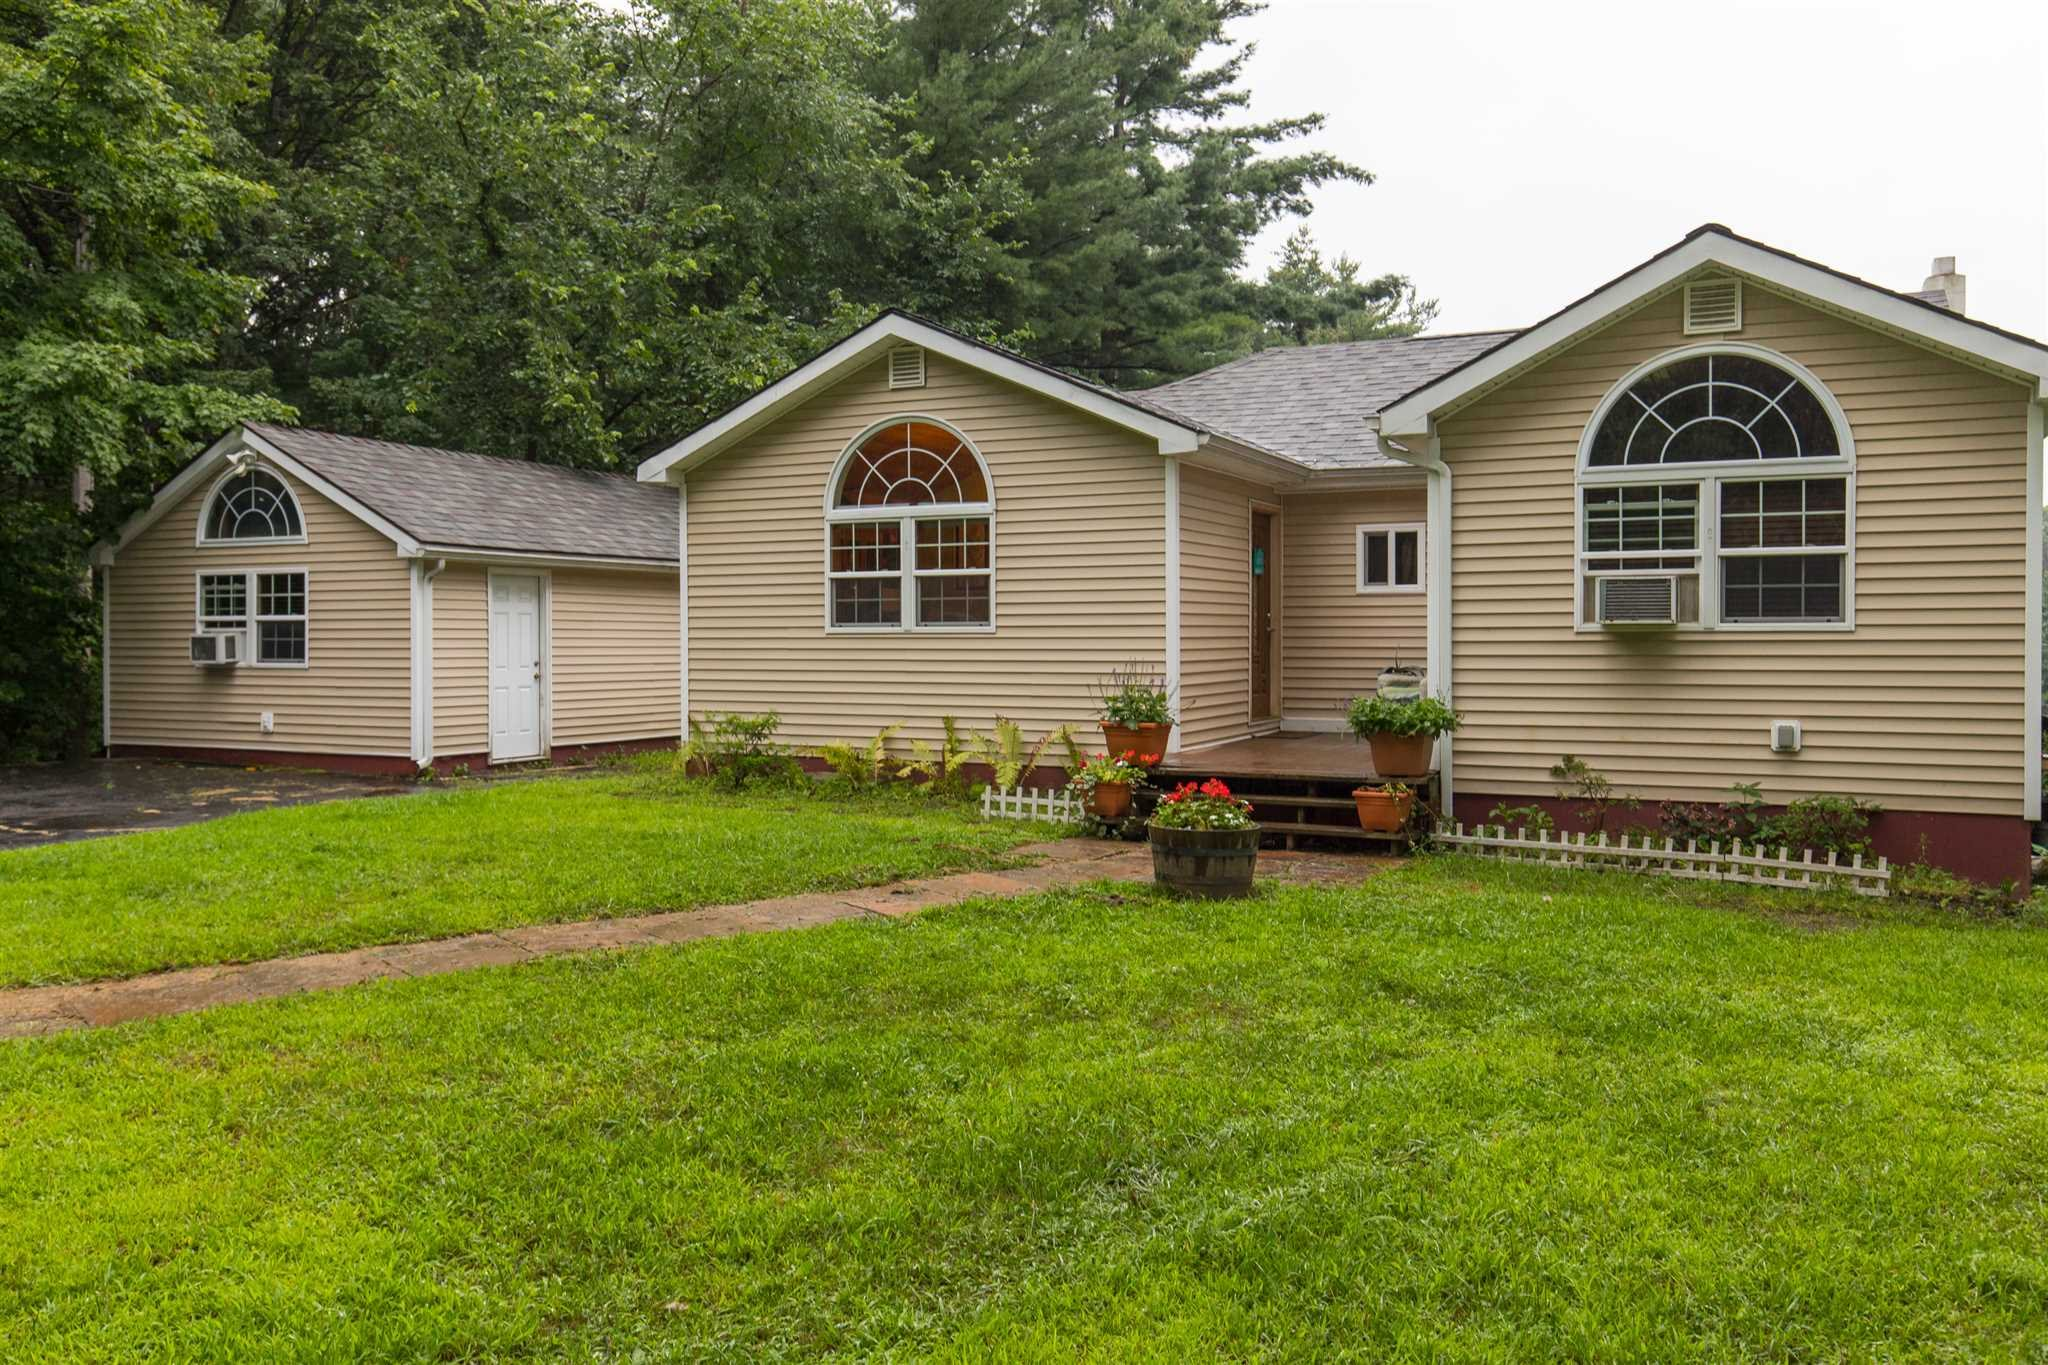 Single Family Home for Sale at 112 SNYDERVILLE Road 112 SNYDERVILLE Road Elizaville, New York 12523 United States